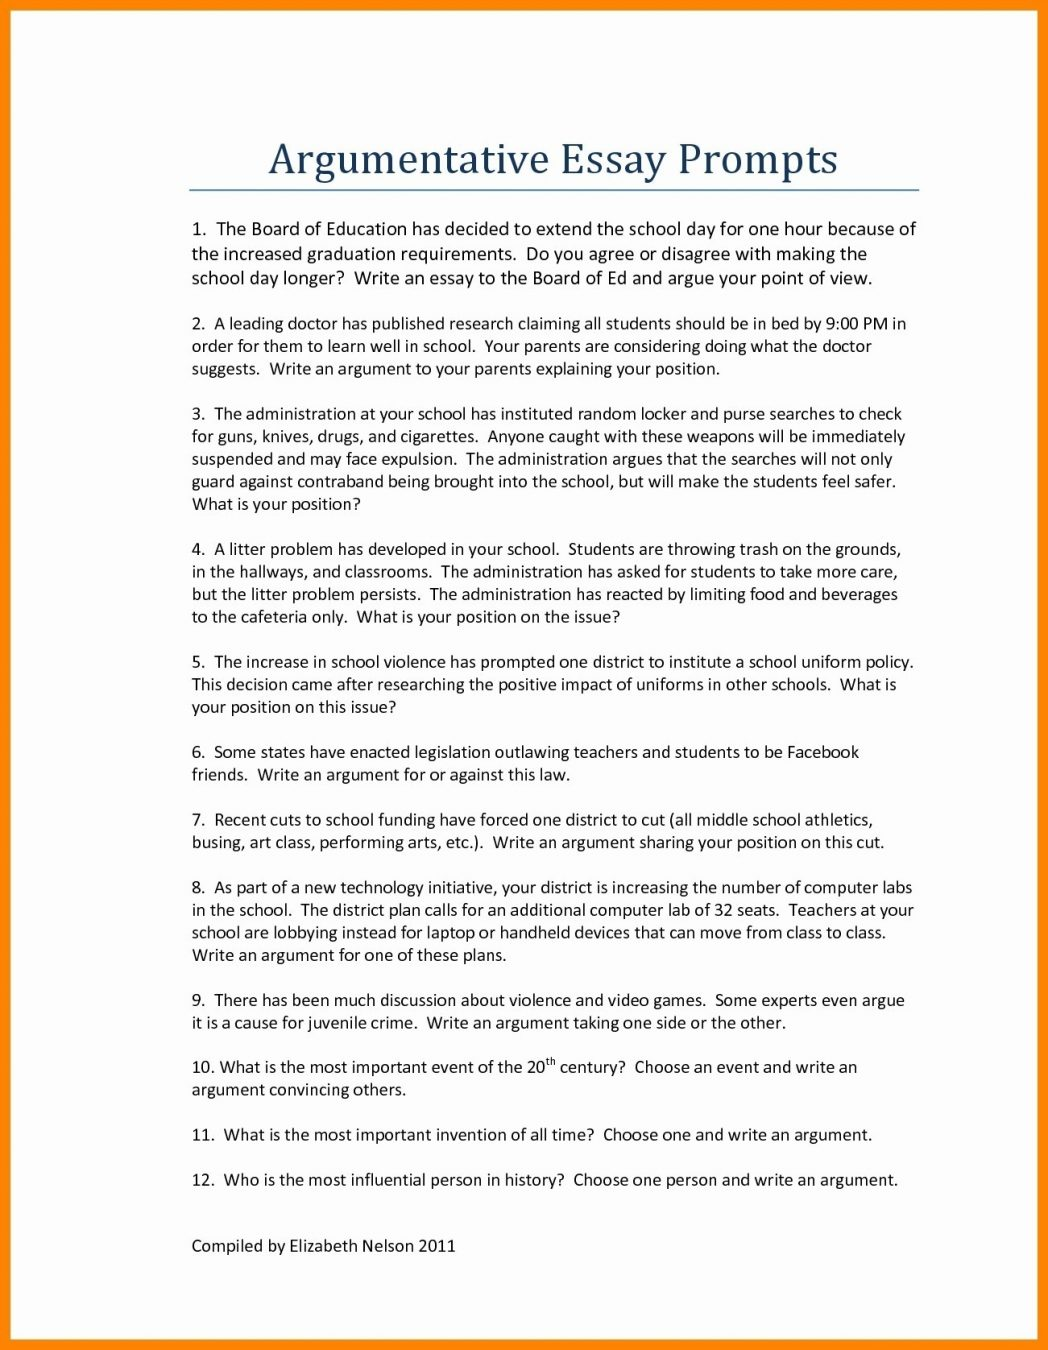 012 Good Persuasive Essay Topics For Middlel As Well Argumentative Hooks Examples Printables Corner College Thesis Conclusion Introduction Pdf 1048x1350 Unique Middle School Easy With Articles Funny Full